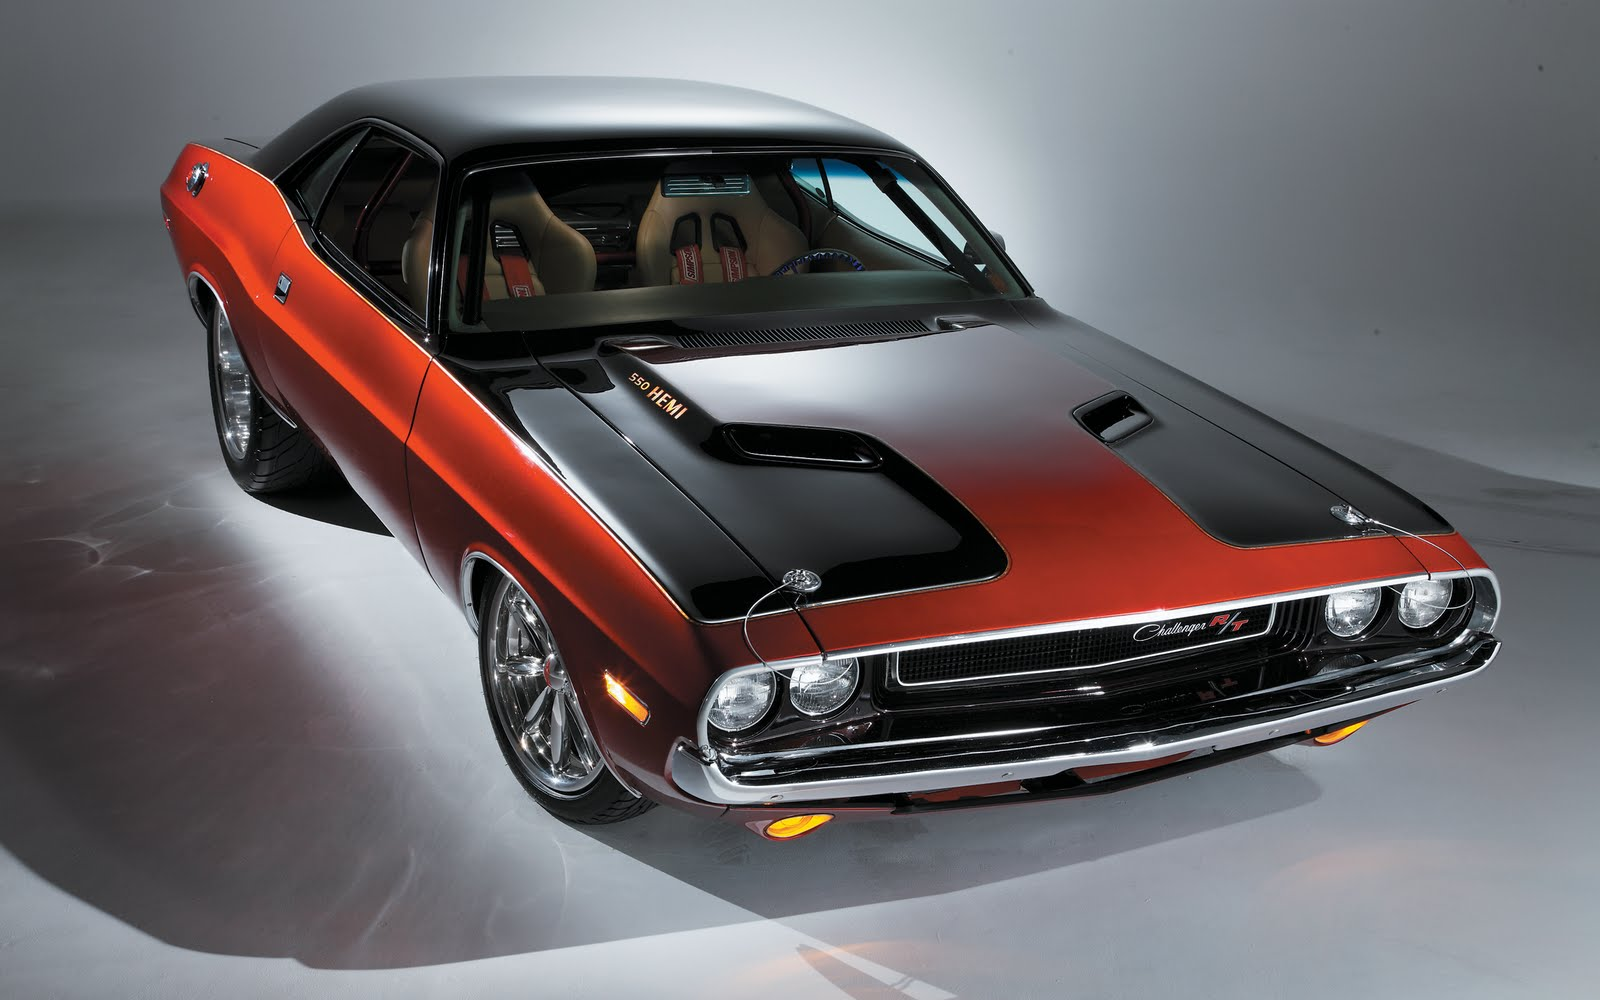 dodge challenger hd wallpaper hd car wallpapers. Black Bedroom Furniture Sets. Home Design Ideas